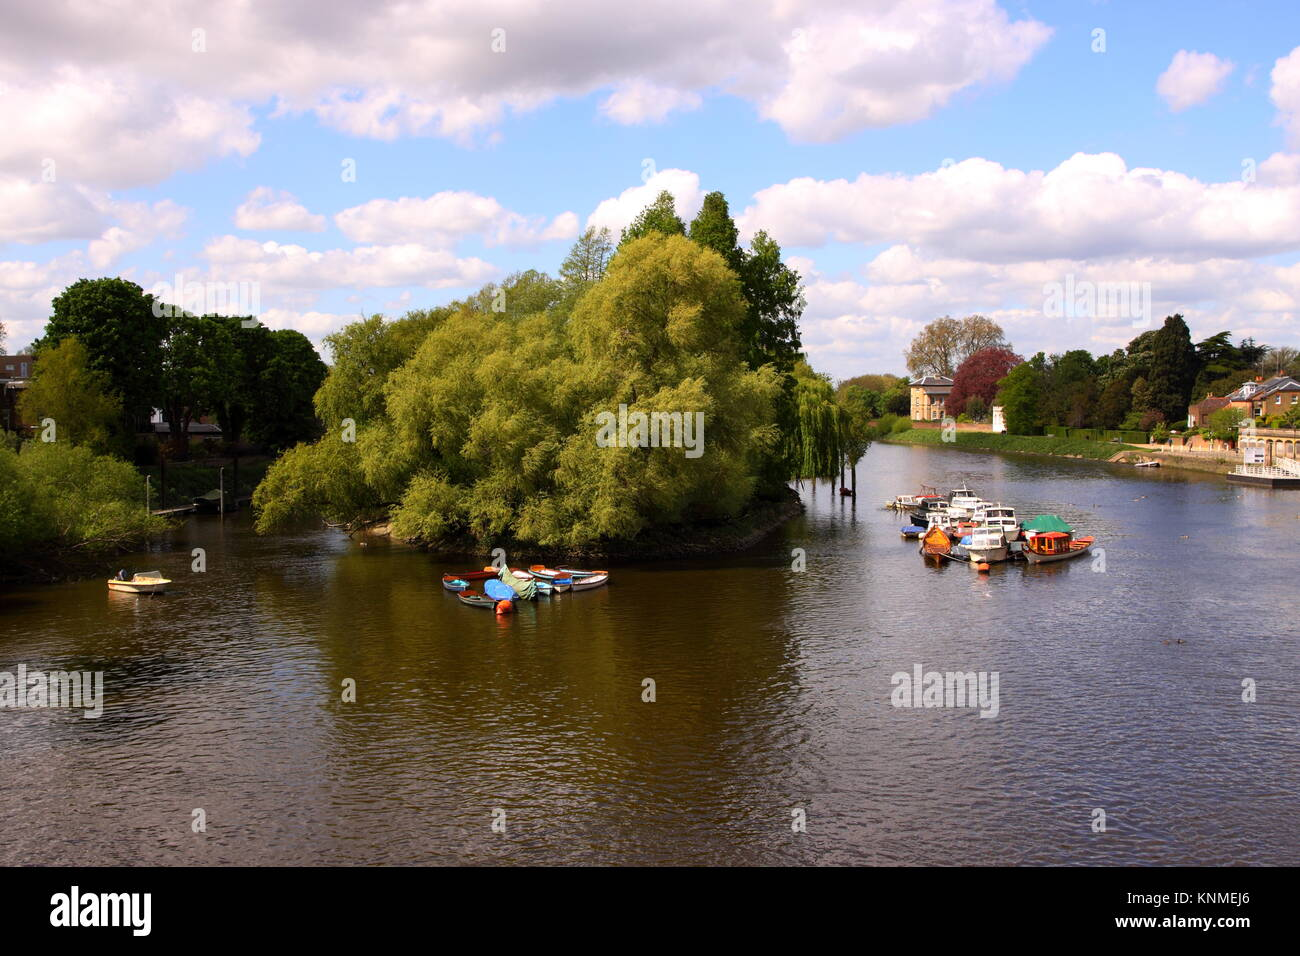 River Thames in Richmond, London - Stock Image